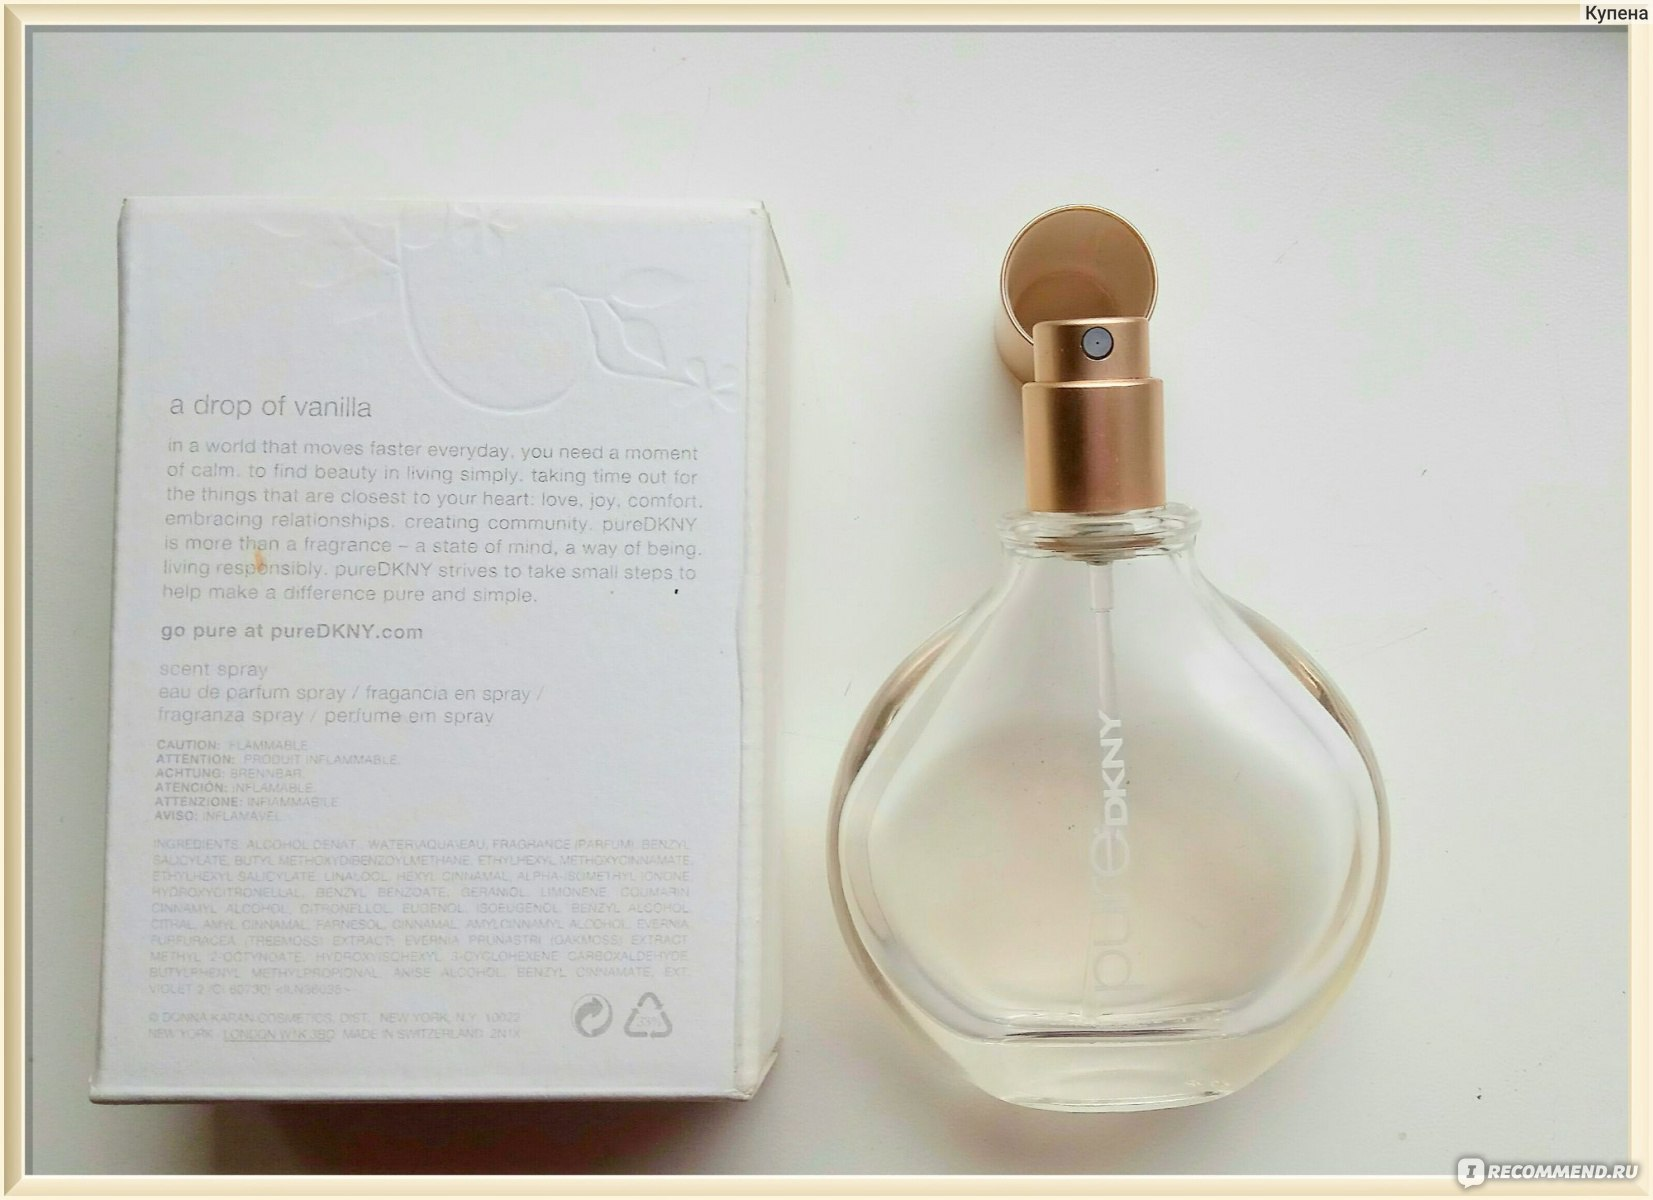 Dkny Pure A Drop Of Vanilla Donna Karan простой но приятный